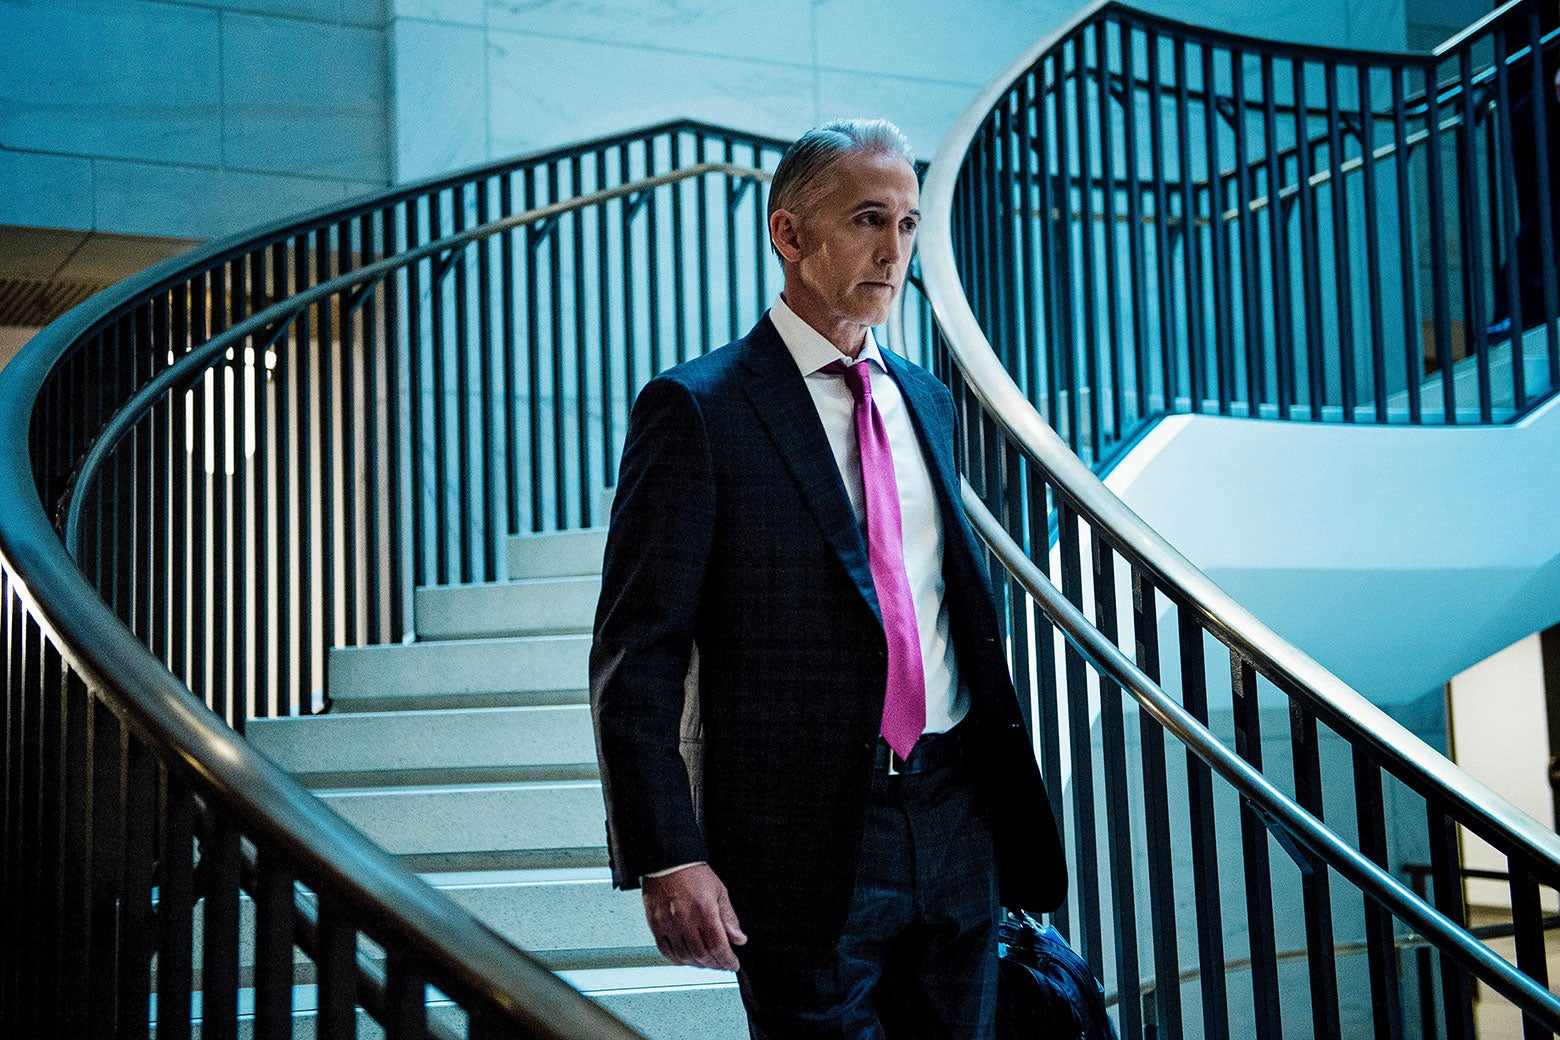 South Carolina Rep. Trey Gowdy arrives for a closed session with Donald Trump Jr. before the House Intelligence Committee on Capitol Hill on Dec. 6.